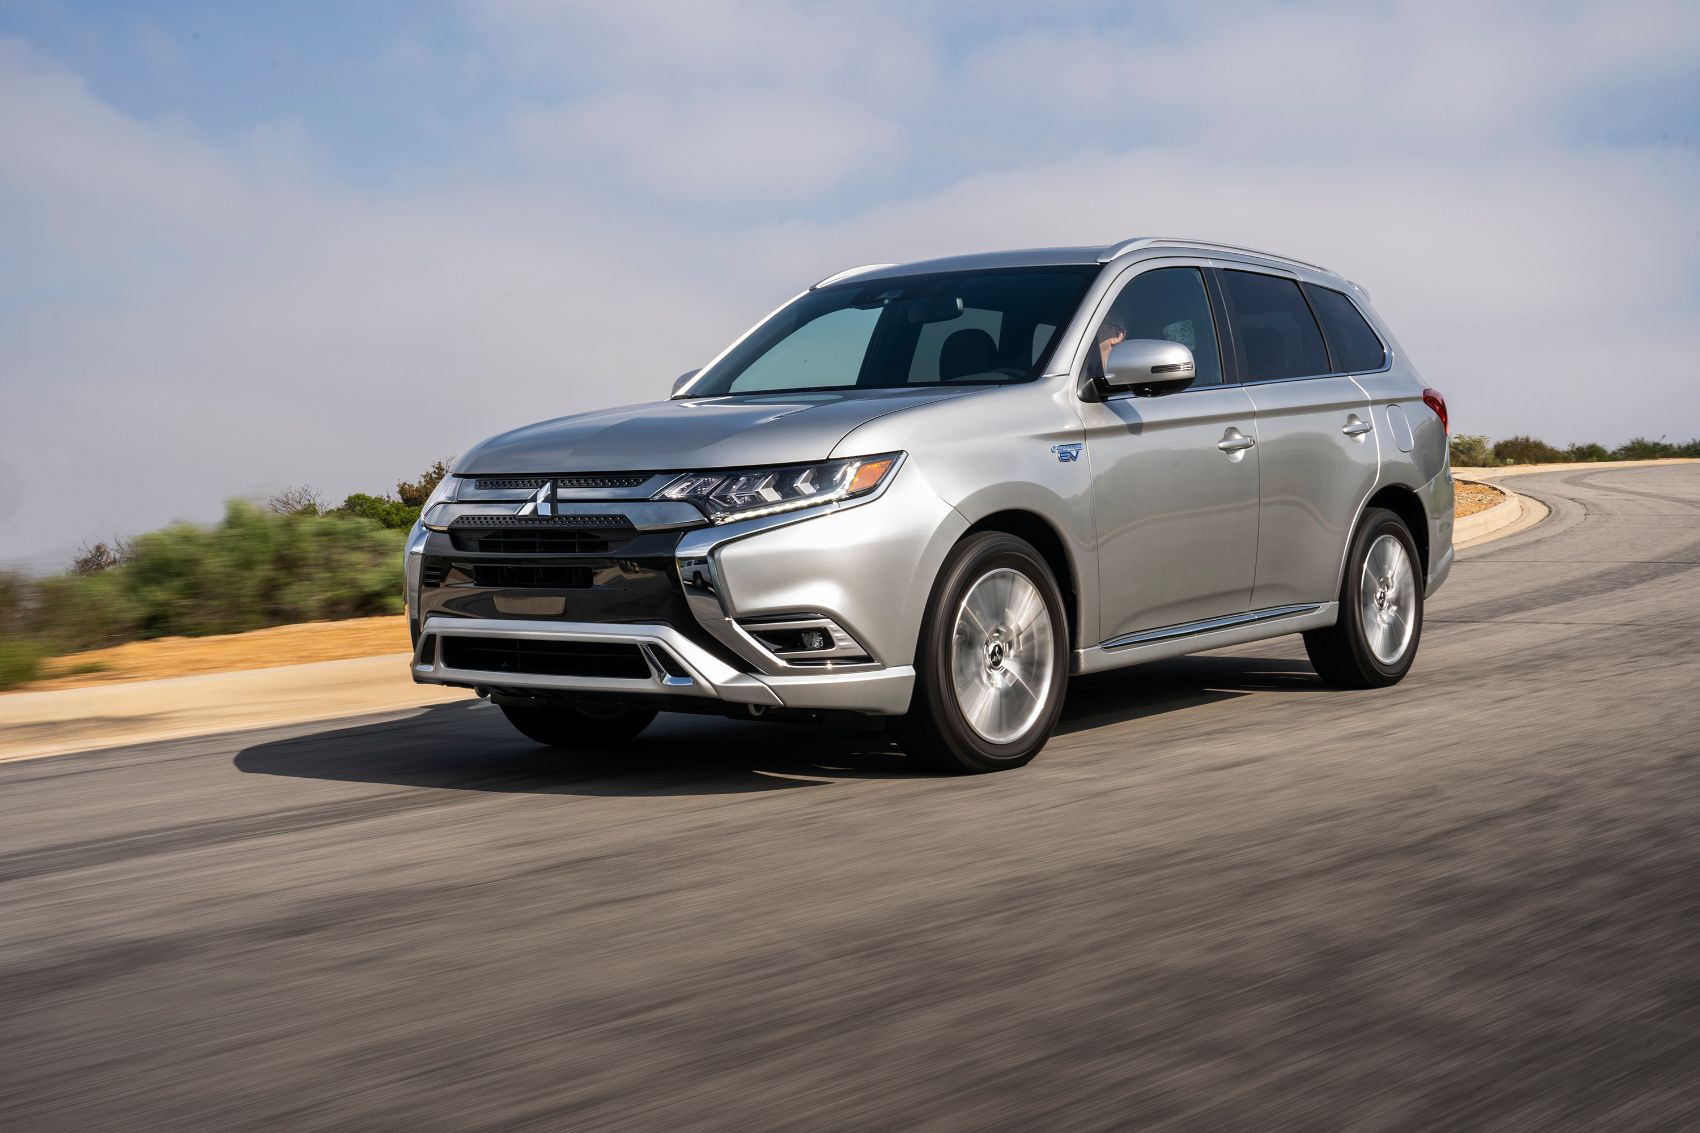 2021 Mitsubishi Outlander PHEV Debuts With More Efficient Powertrain & Increased Range